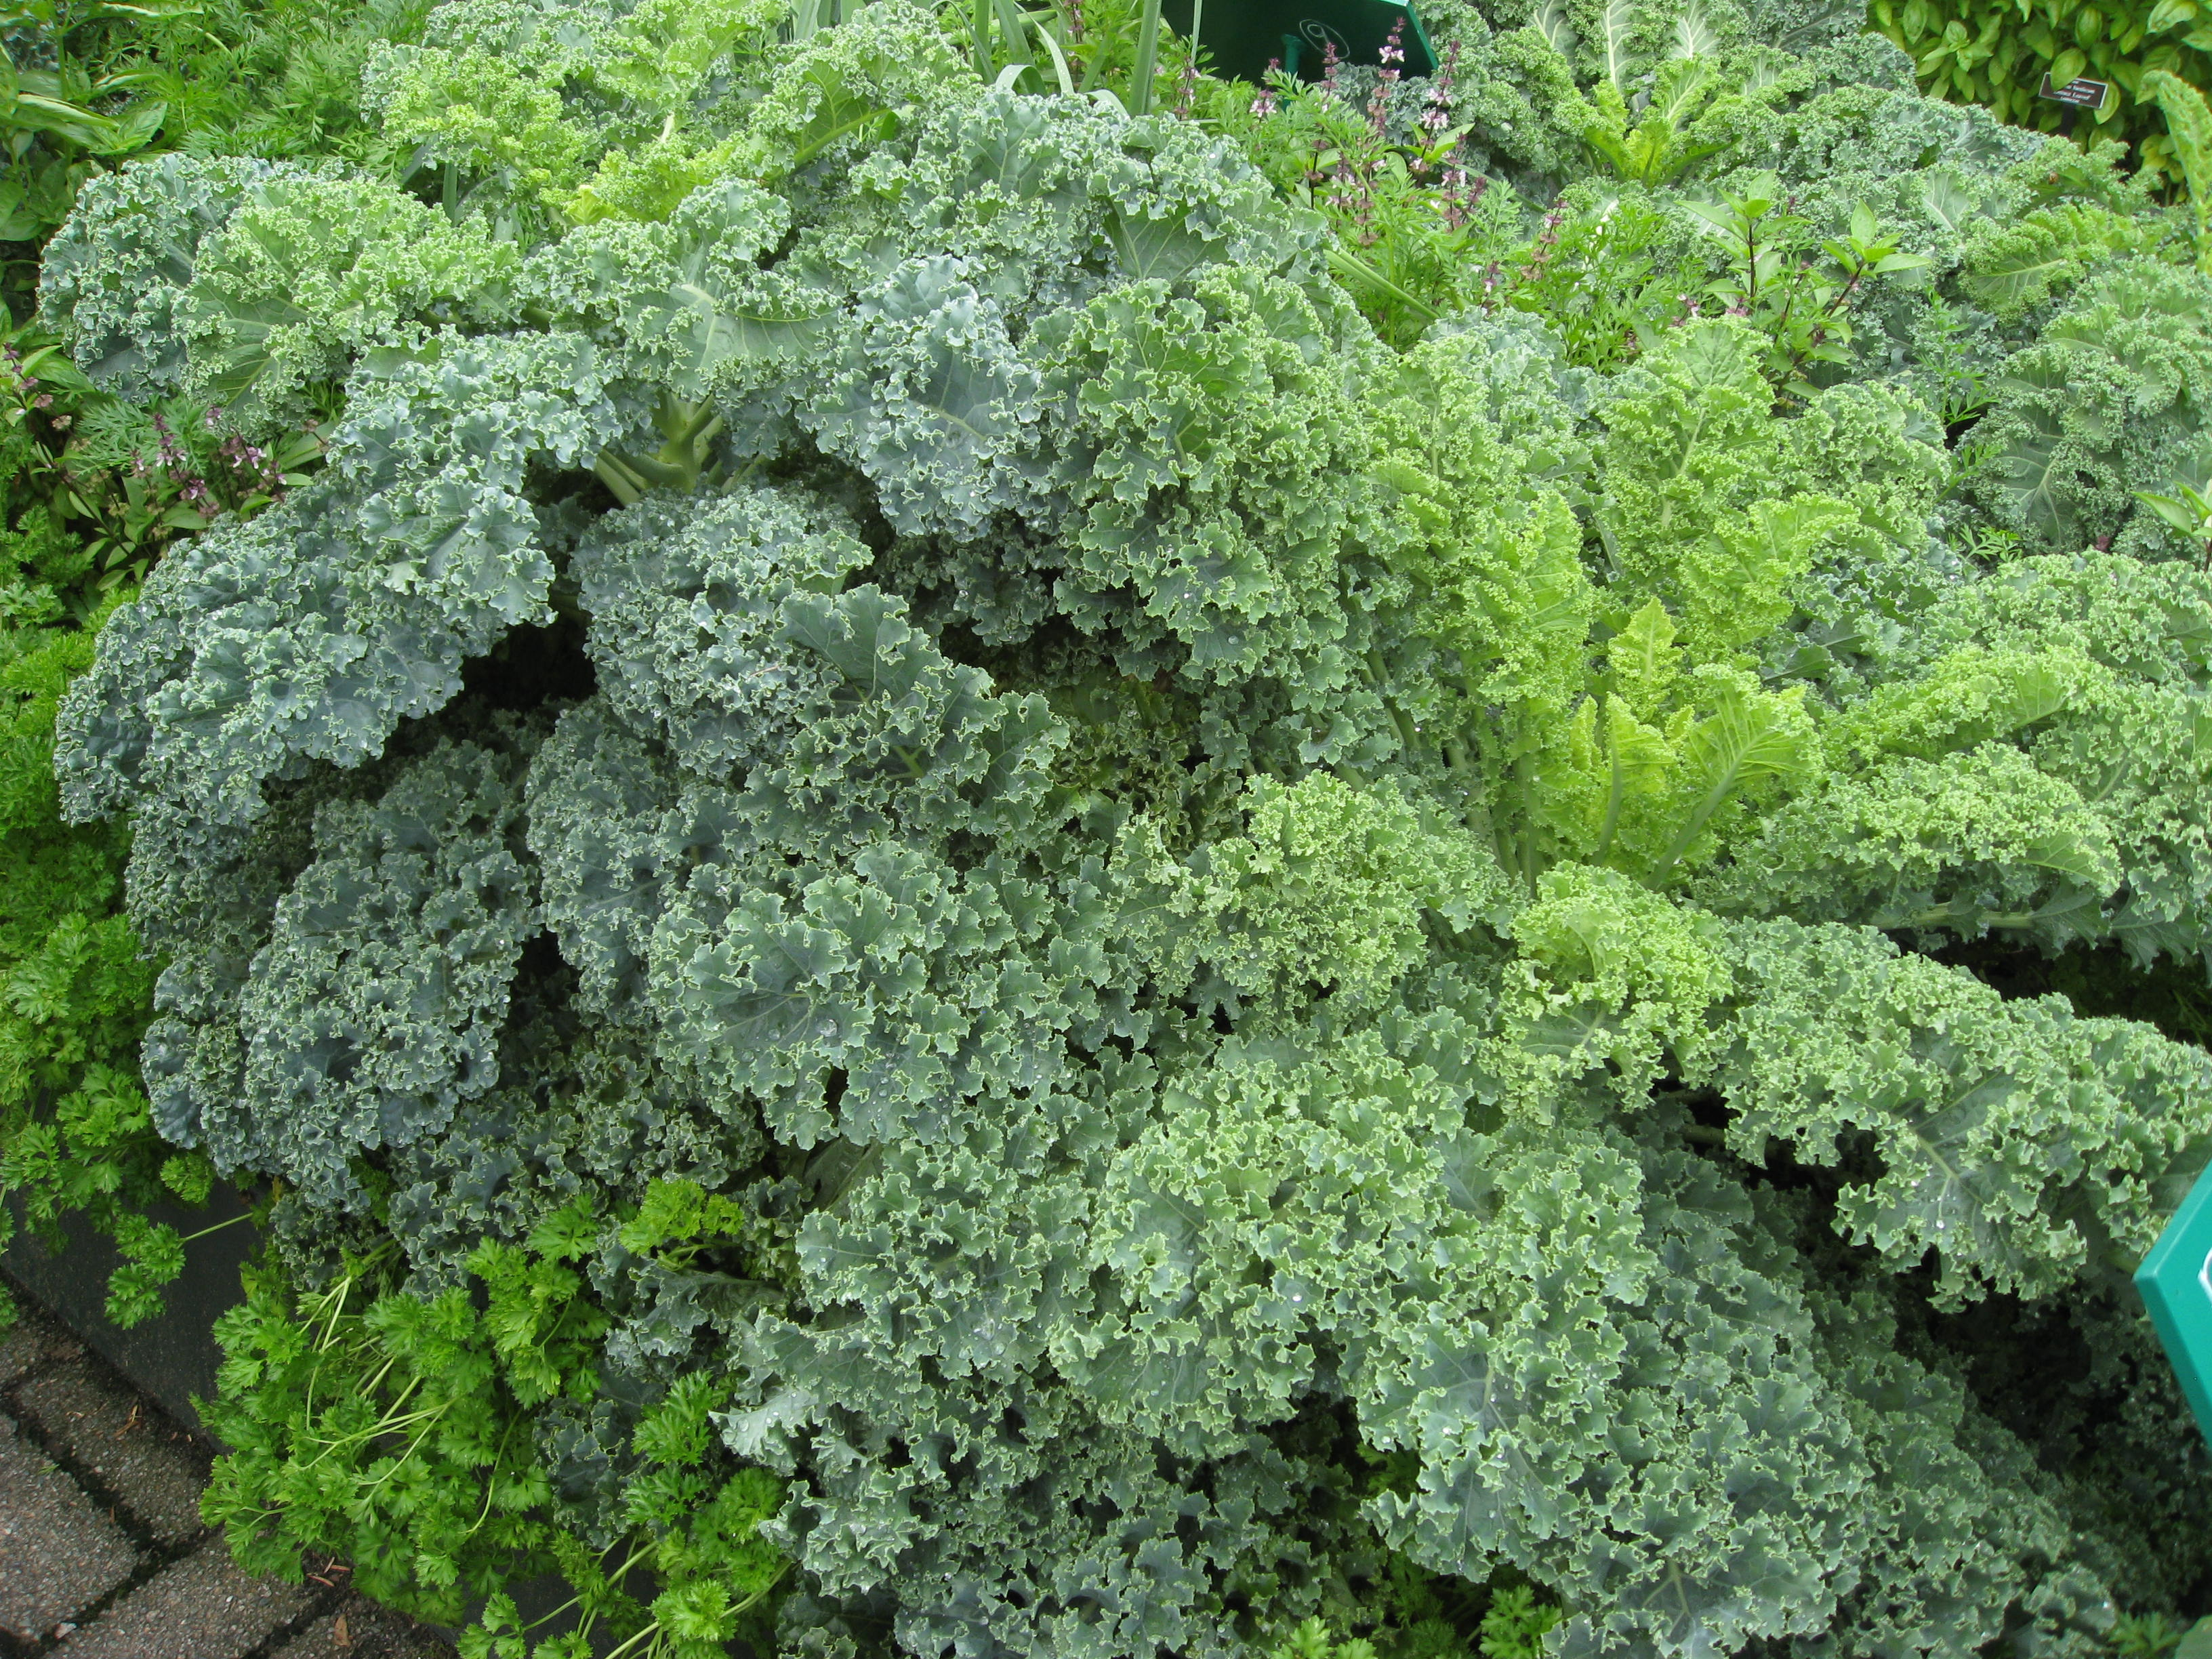 Ahhh our Beloved Kale!!!! So gorgeous!!